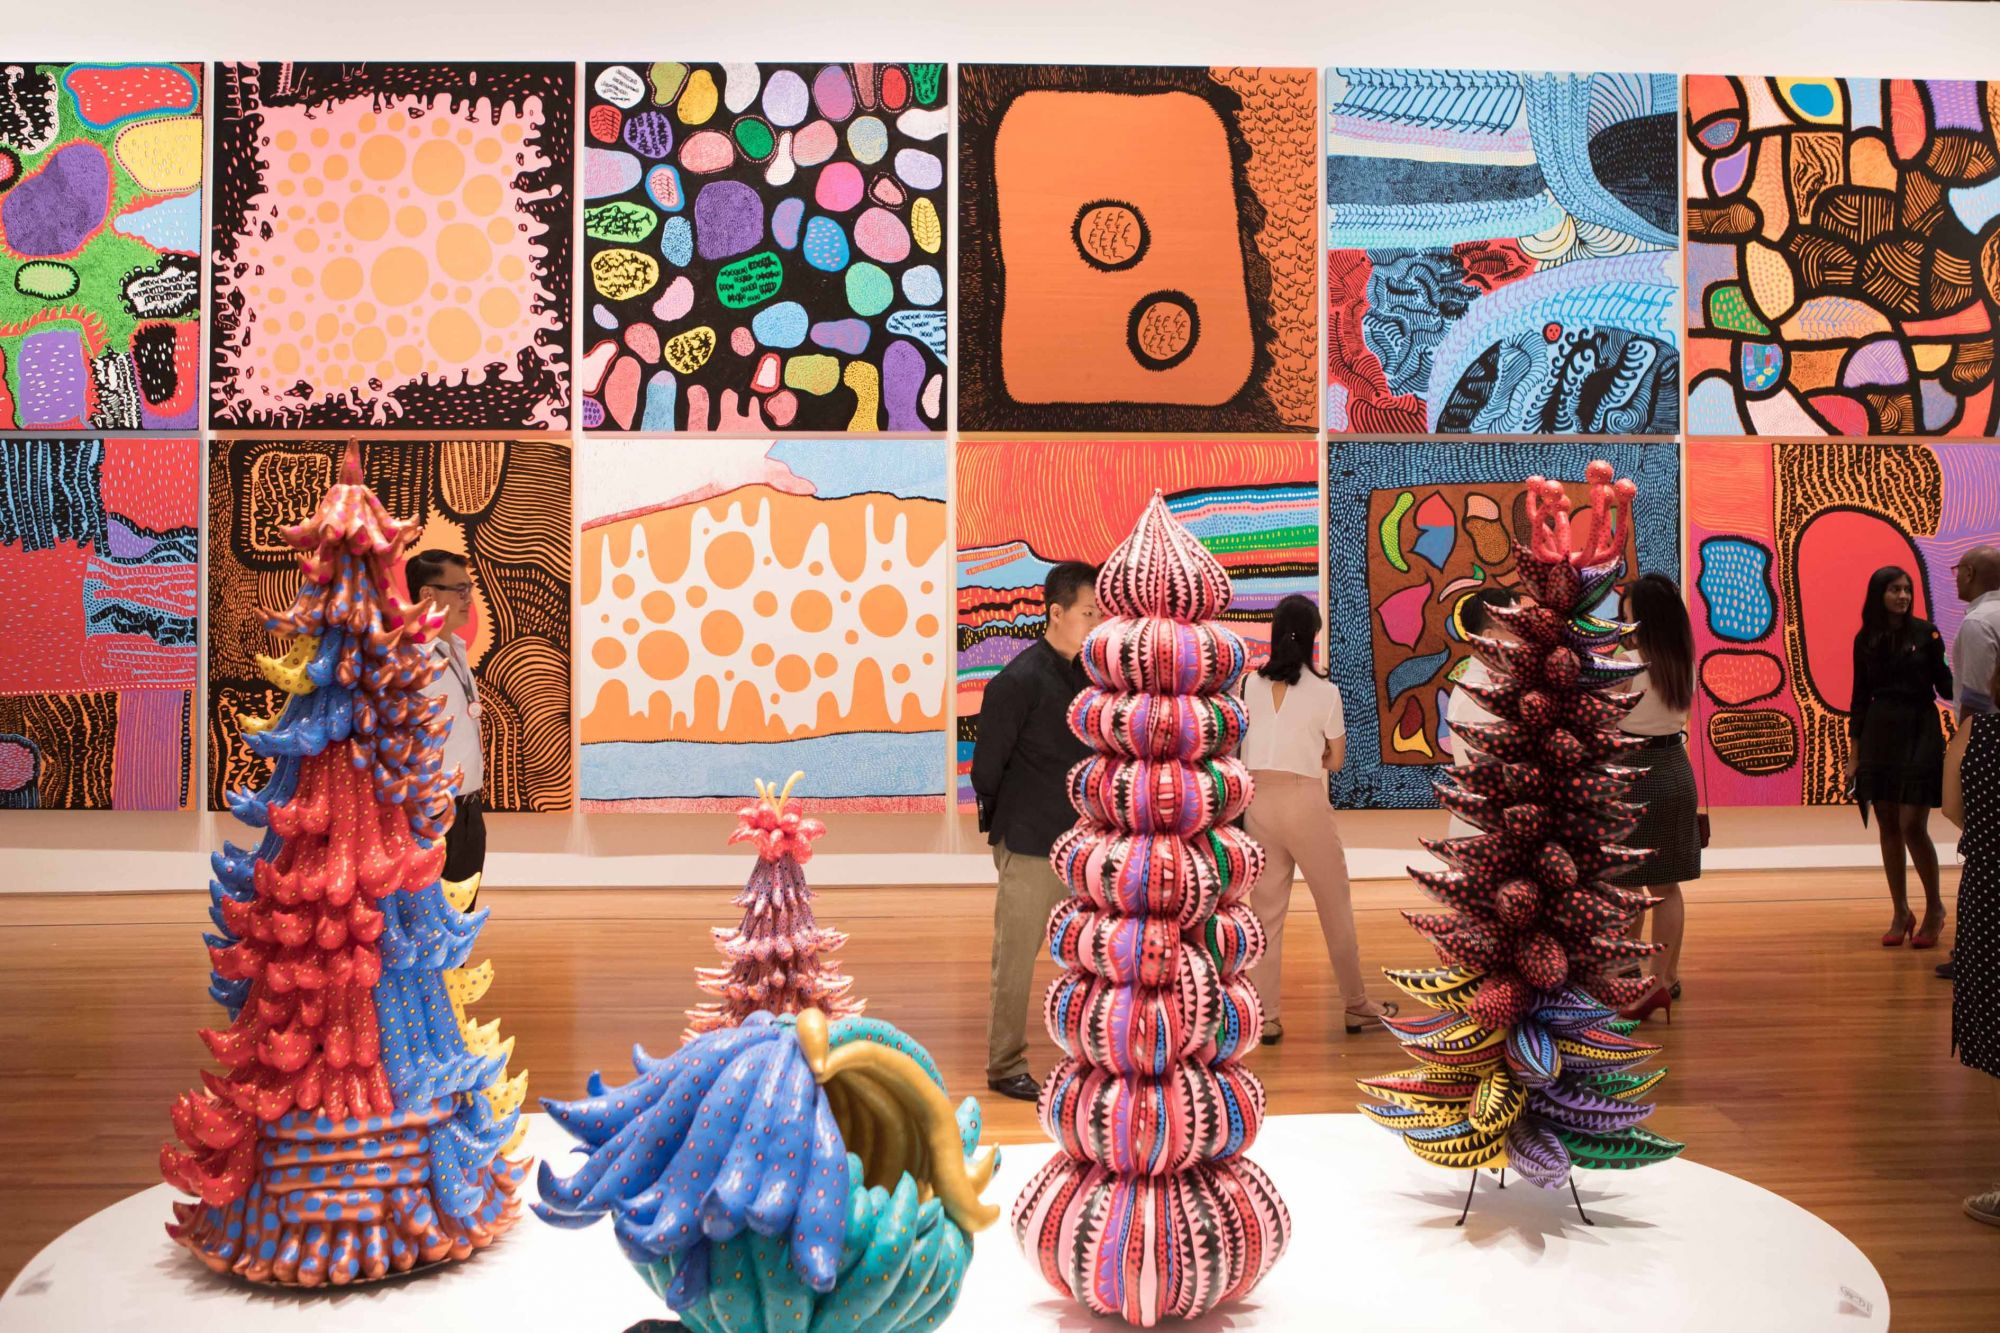 The National Gallery Singapore's Young Collectors Summer Party